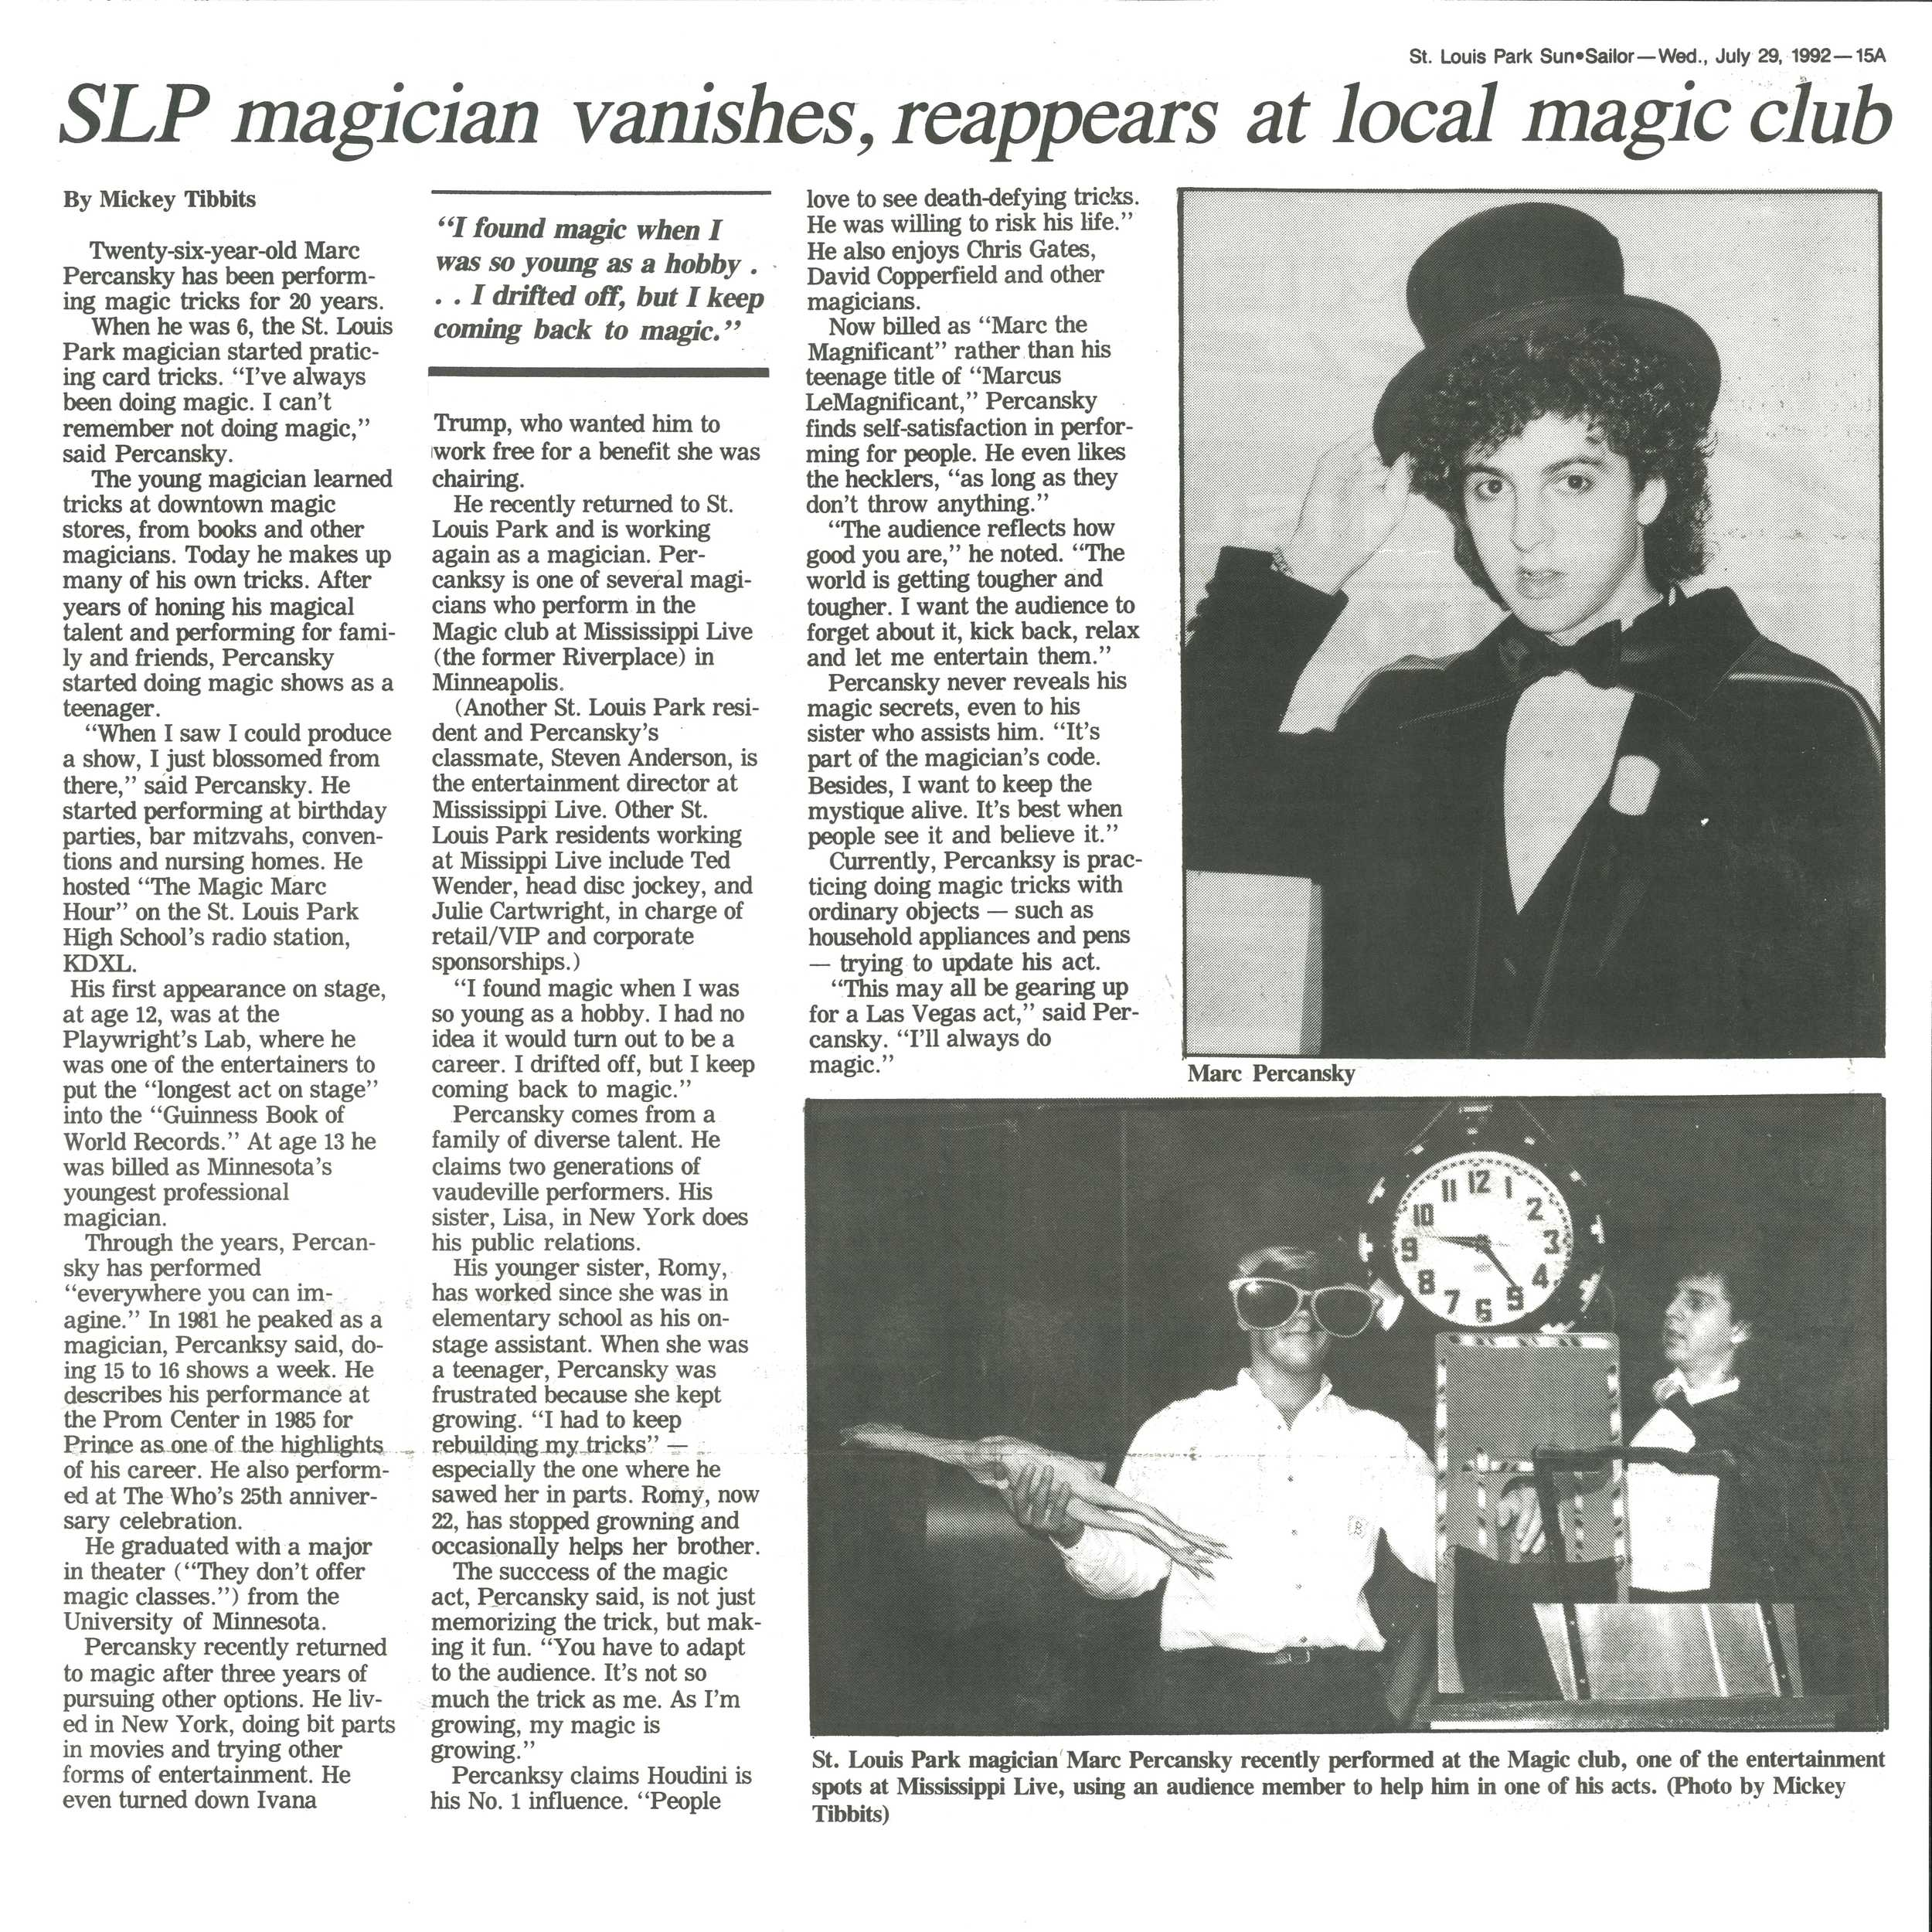 Marc The Magnificent / St. Louis Park Sun/Sailor - Wed., July 29, 1992 - 15A / By Mickey Tibbits